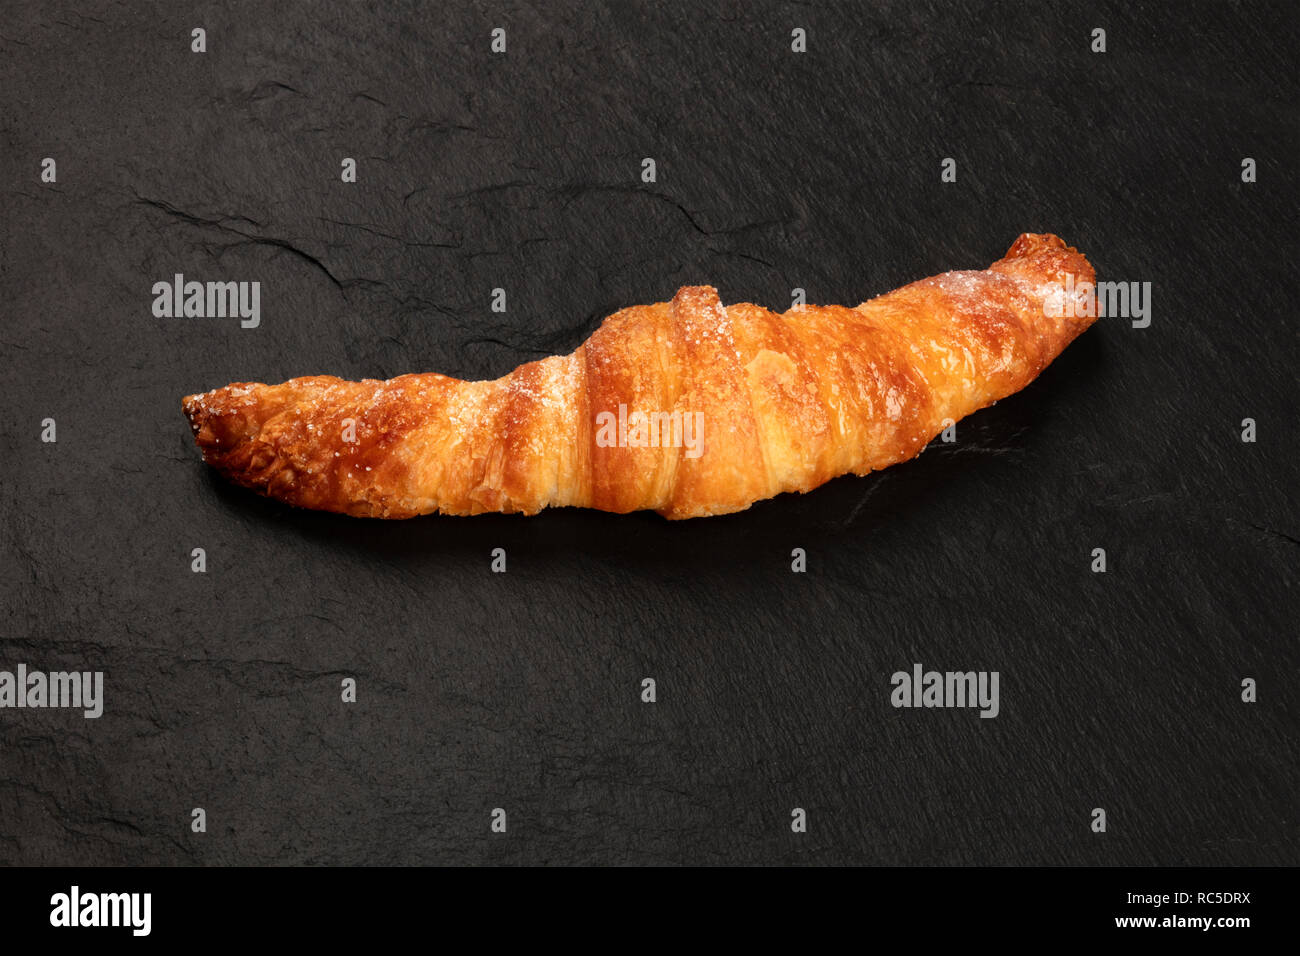 A croissant on a black background with copy space - Stock Image